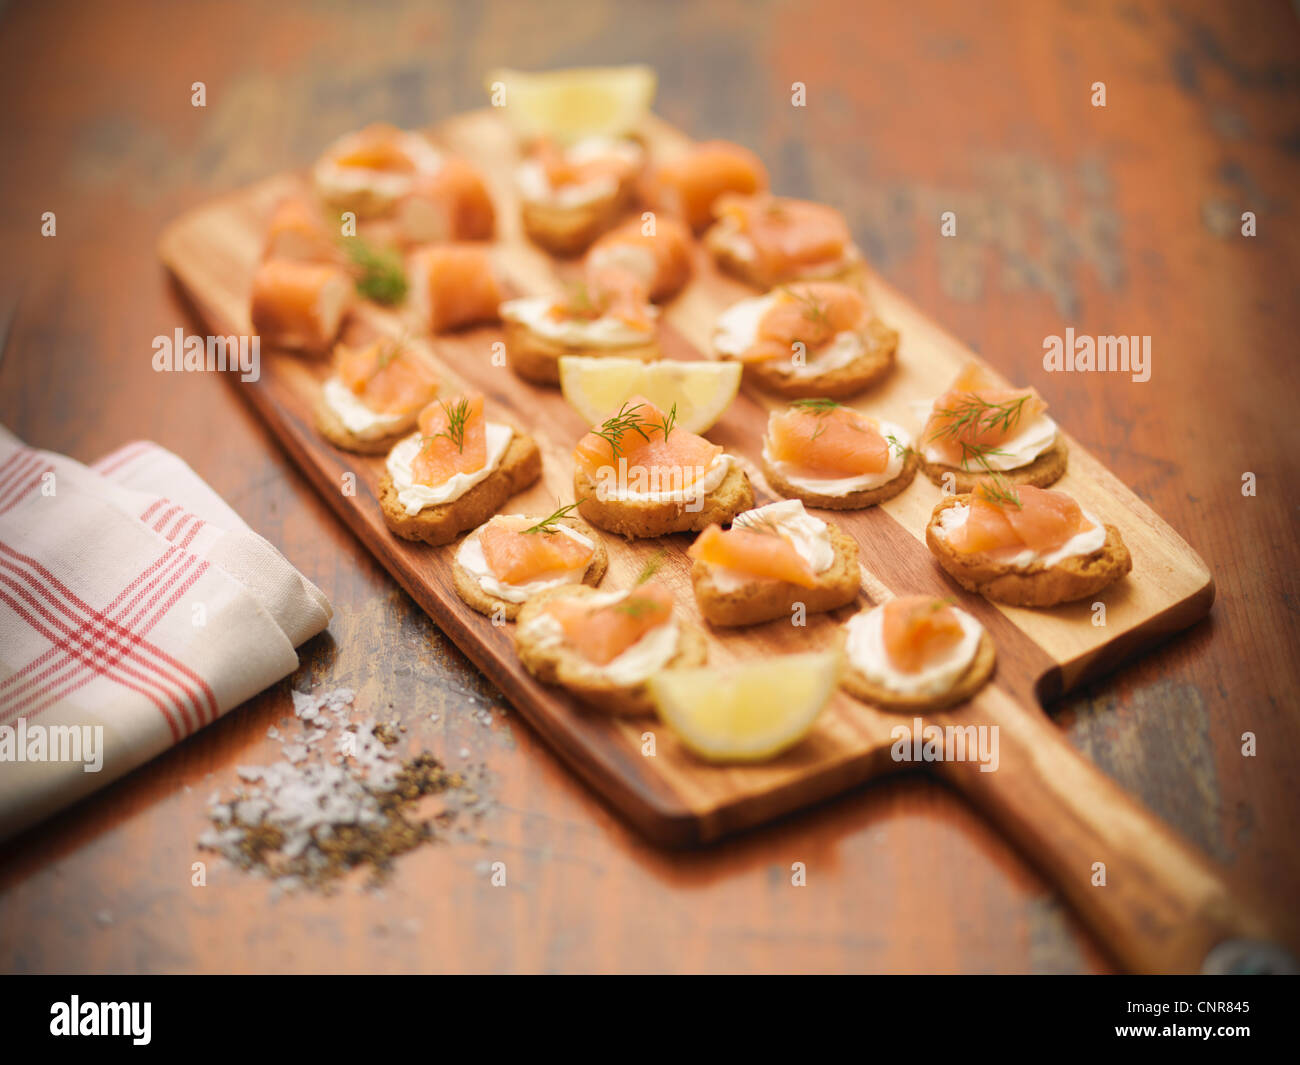 Plate of salmon, cheese and crackers - Stock Image